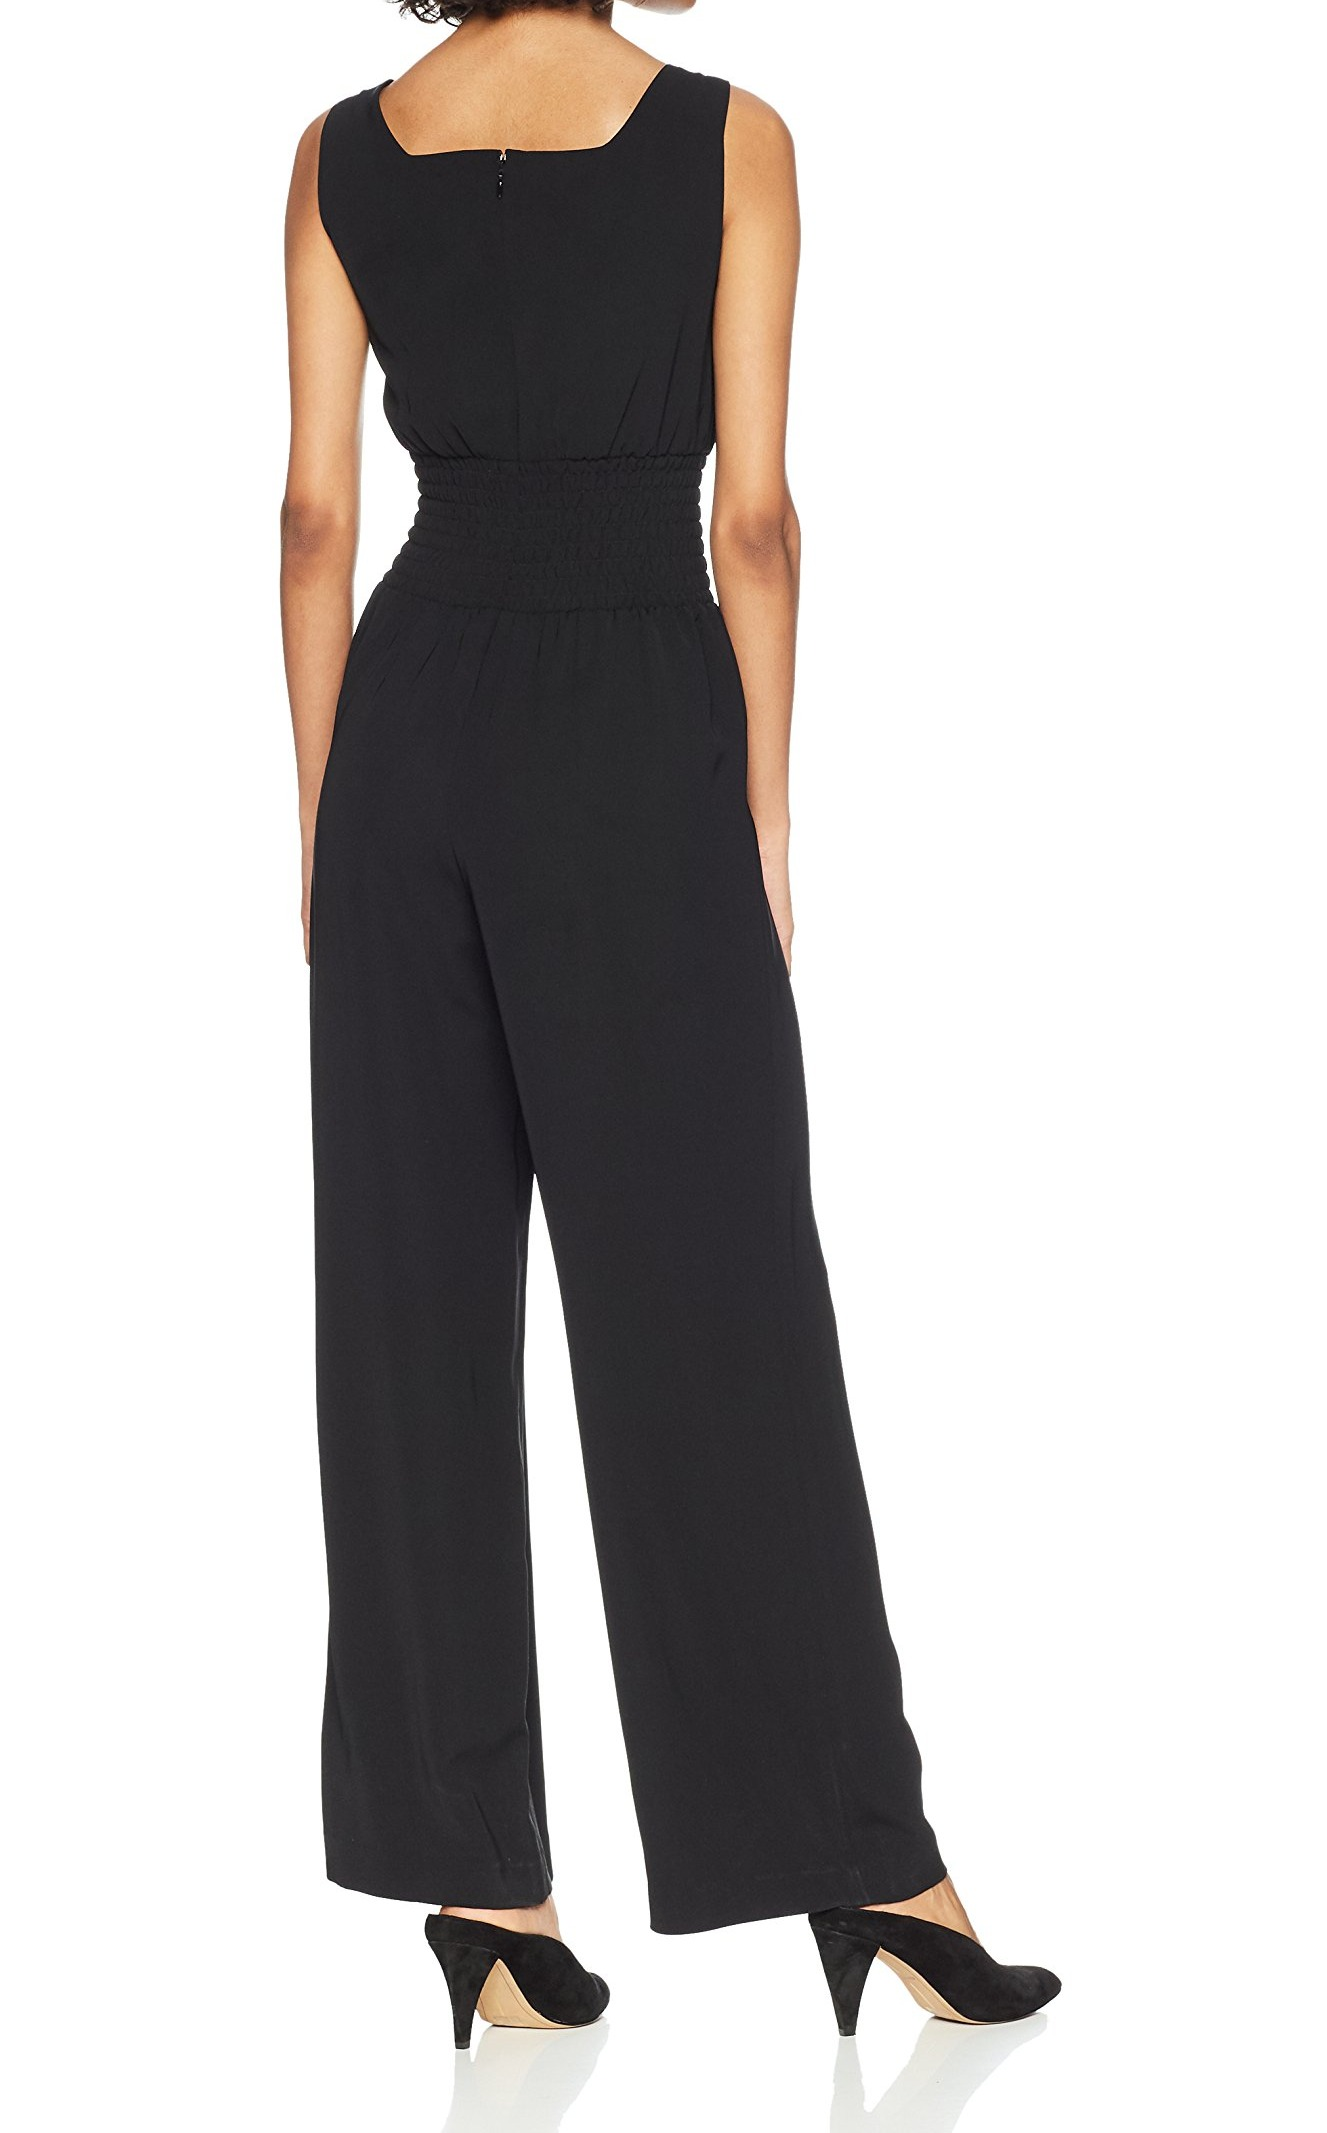 544afeaf48a We have more Nine West in Size 4 - Click Here Click to see all Womens  Jumpsuits   Rompers in Size 4